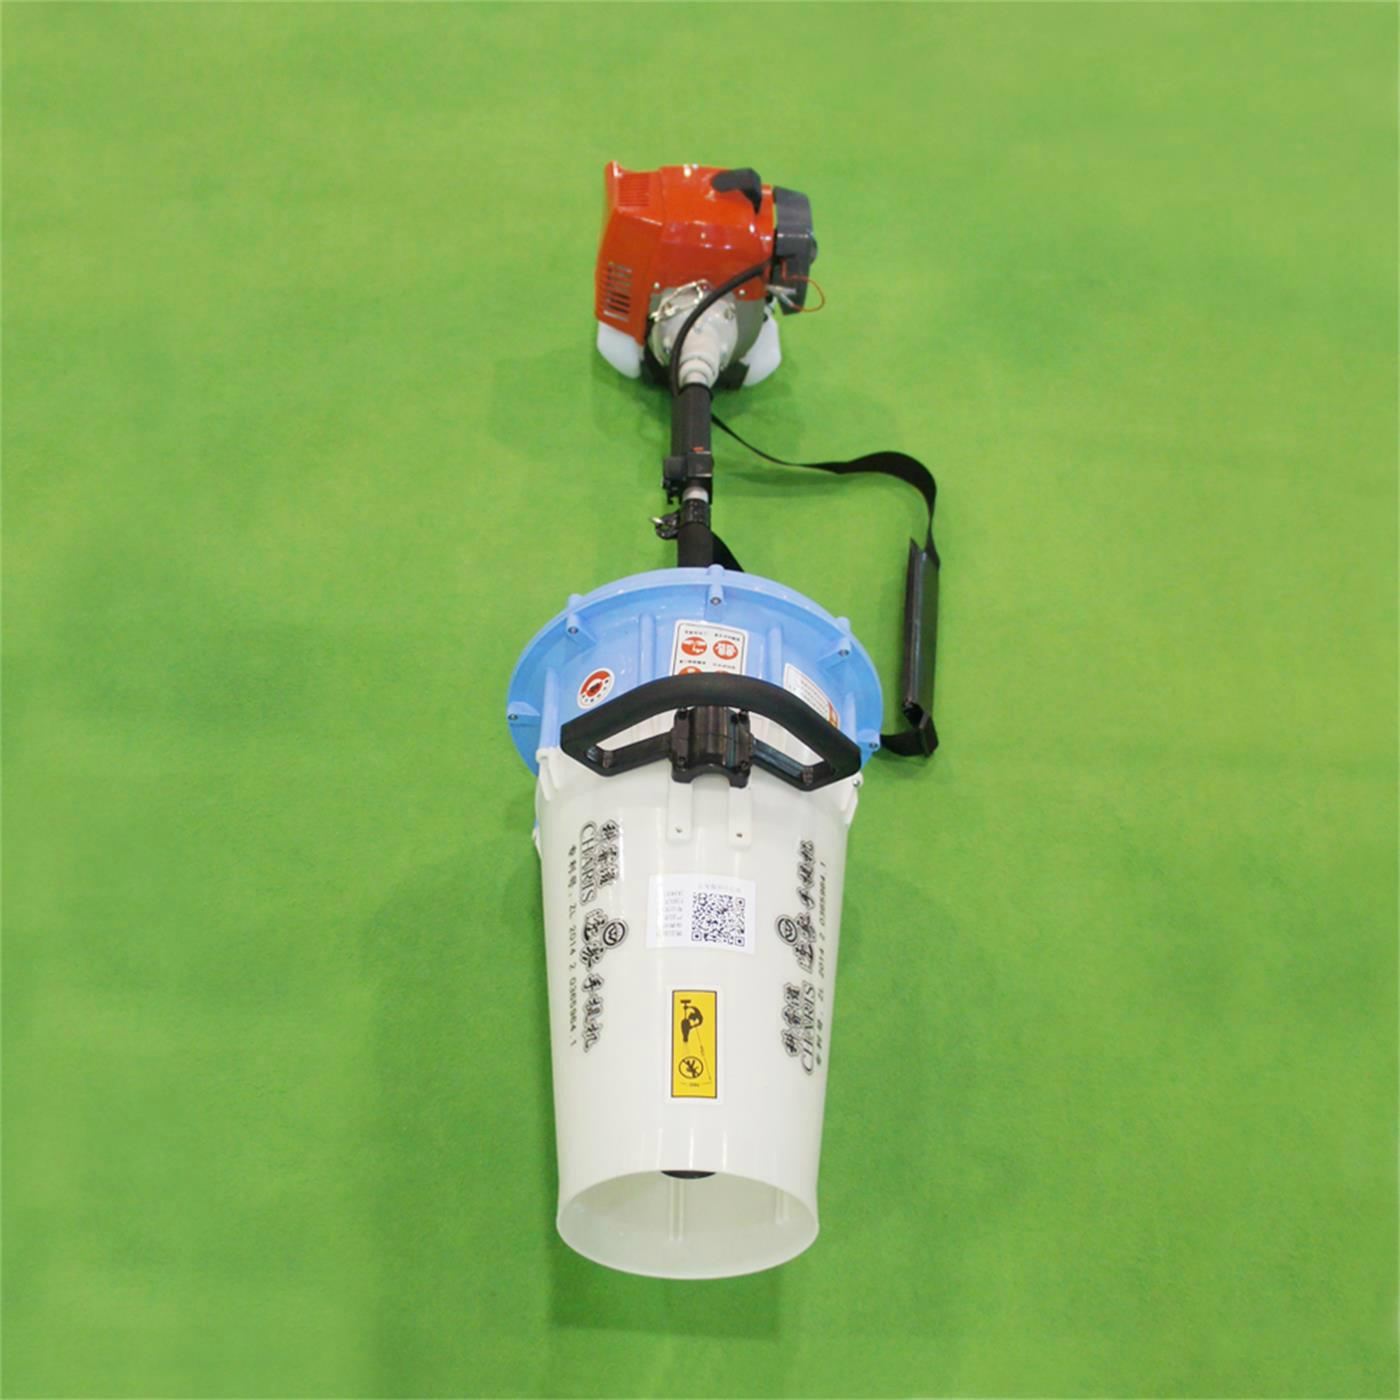 hand hold high pressure garden air blast sprayer gun 5